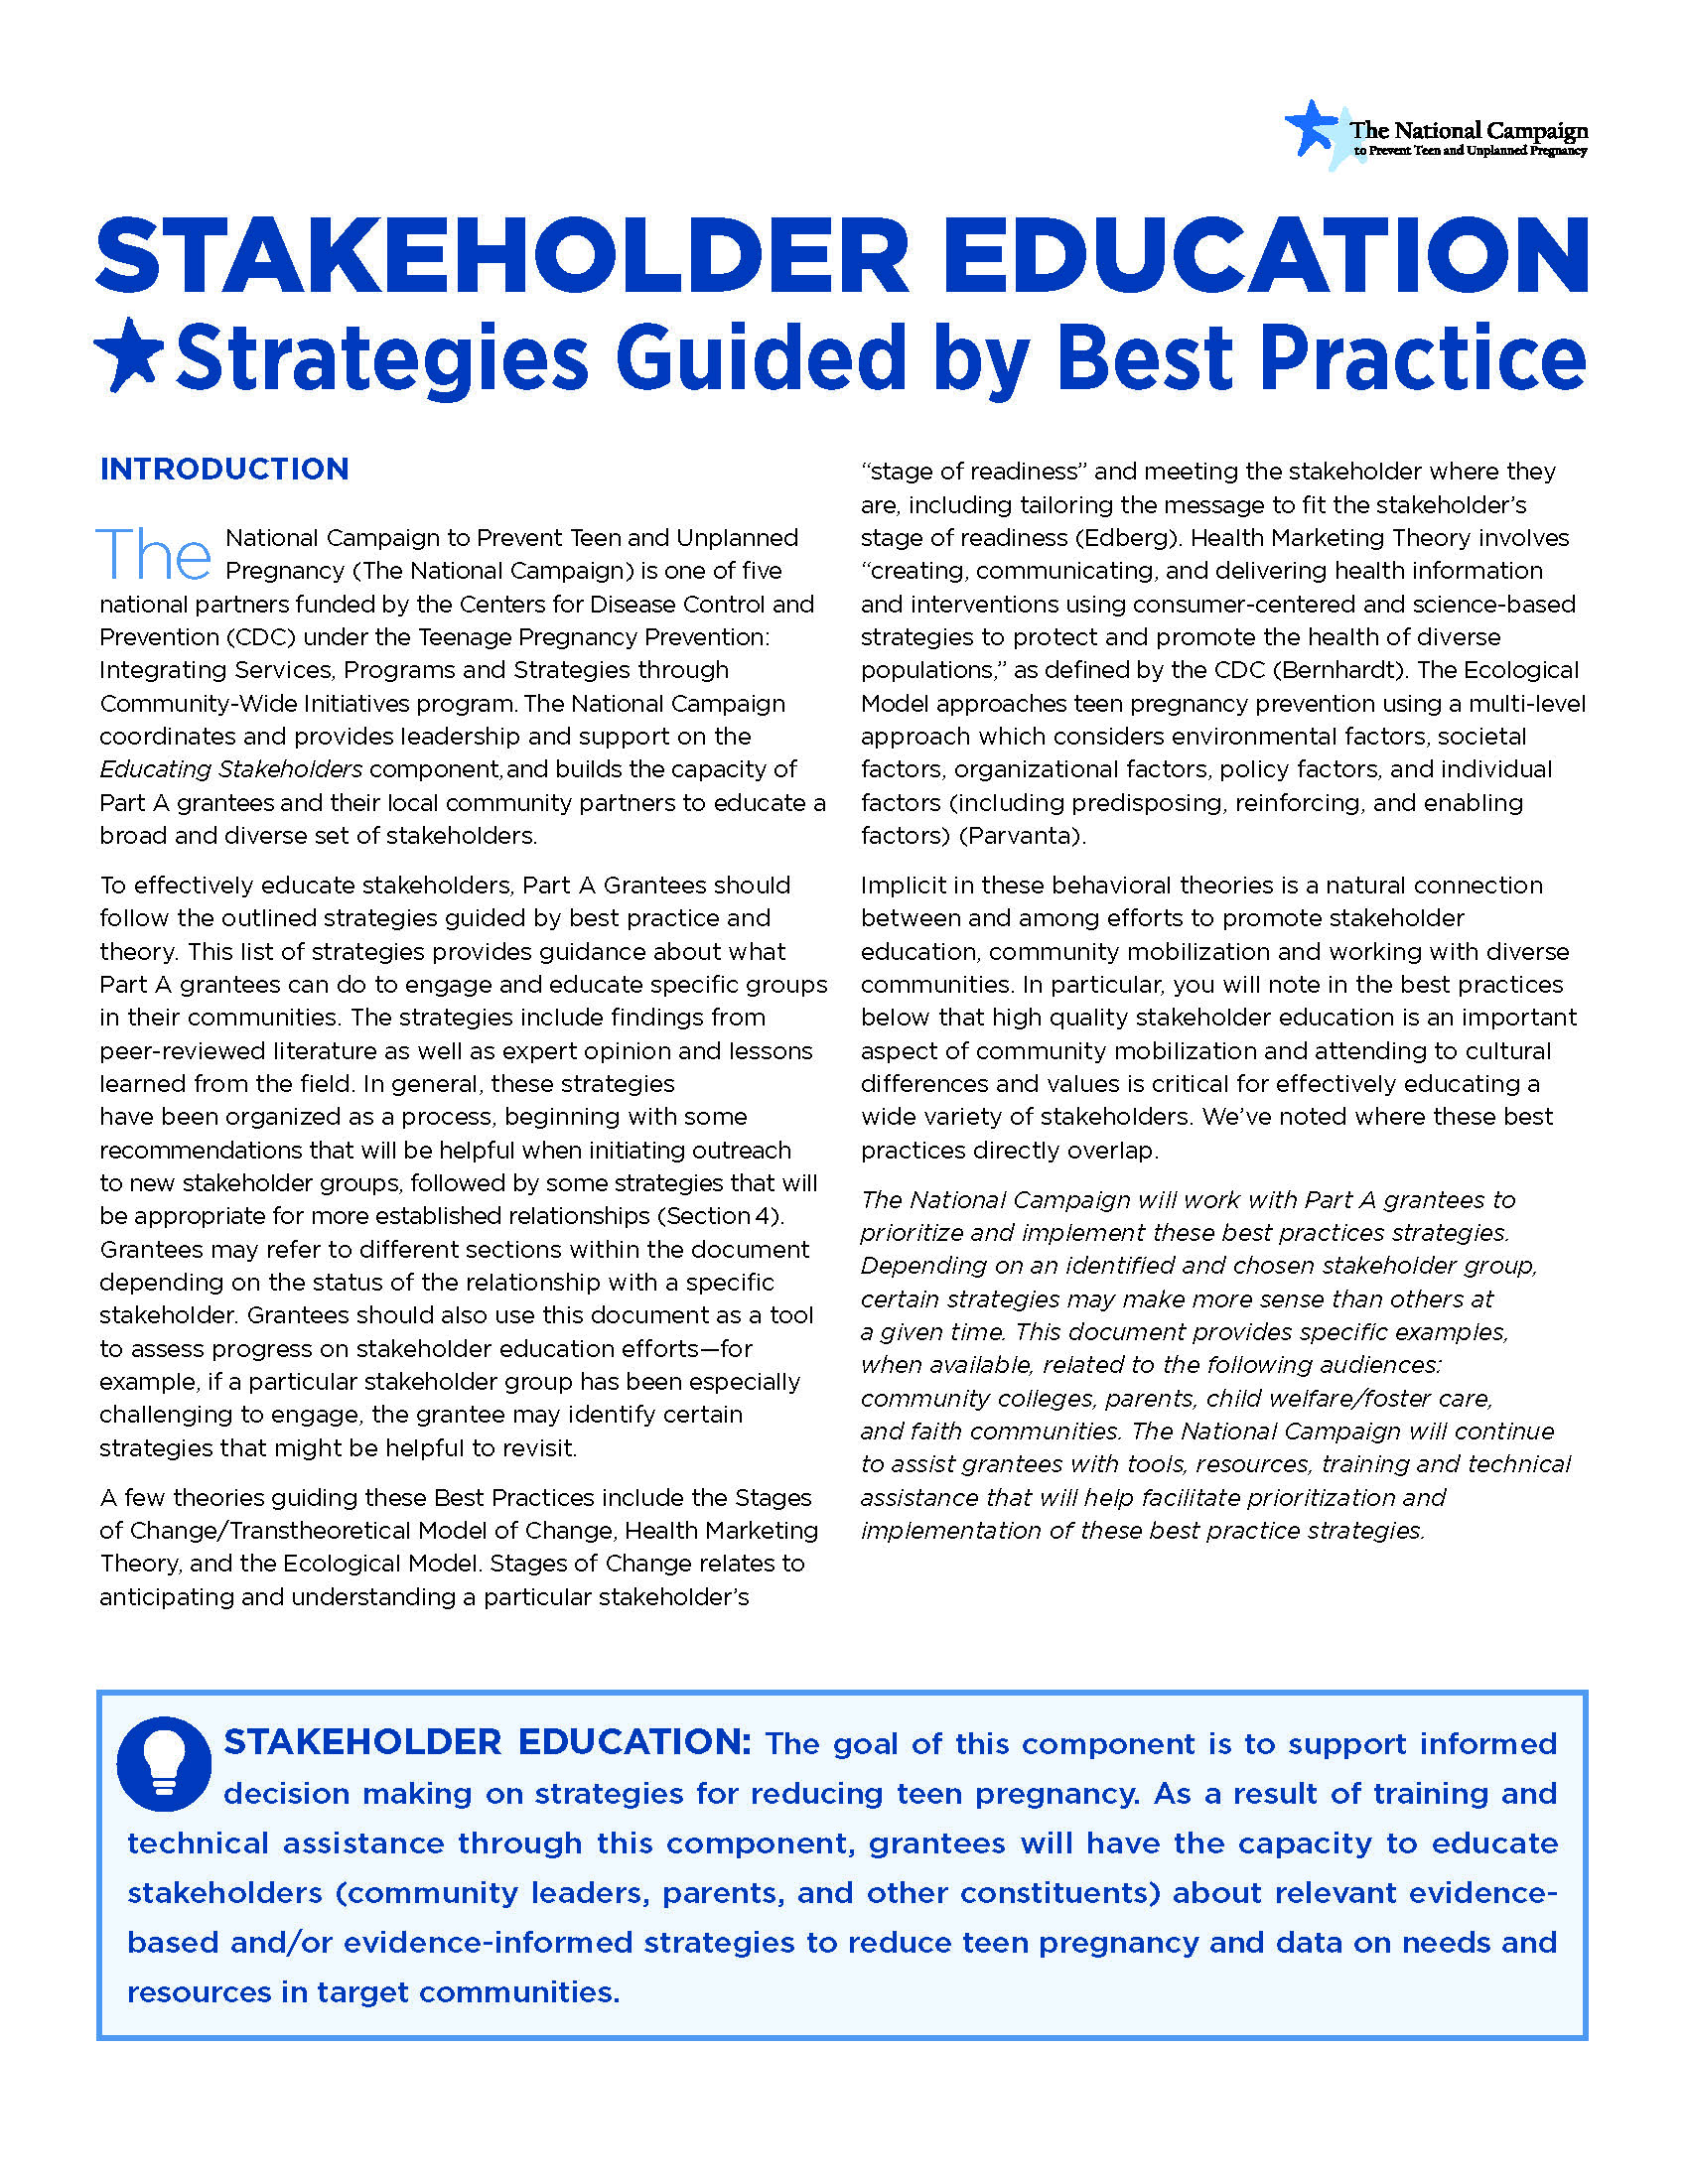 Stakeholder Education: Strategies Guided by Best Practice